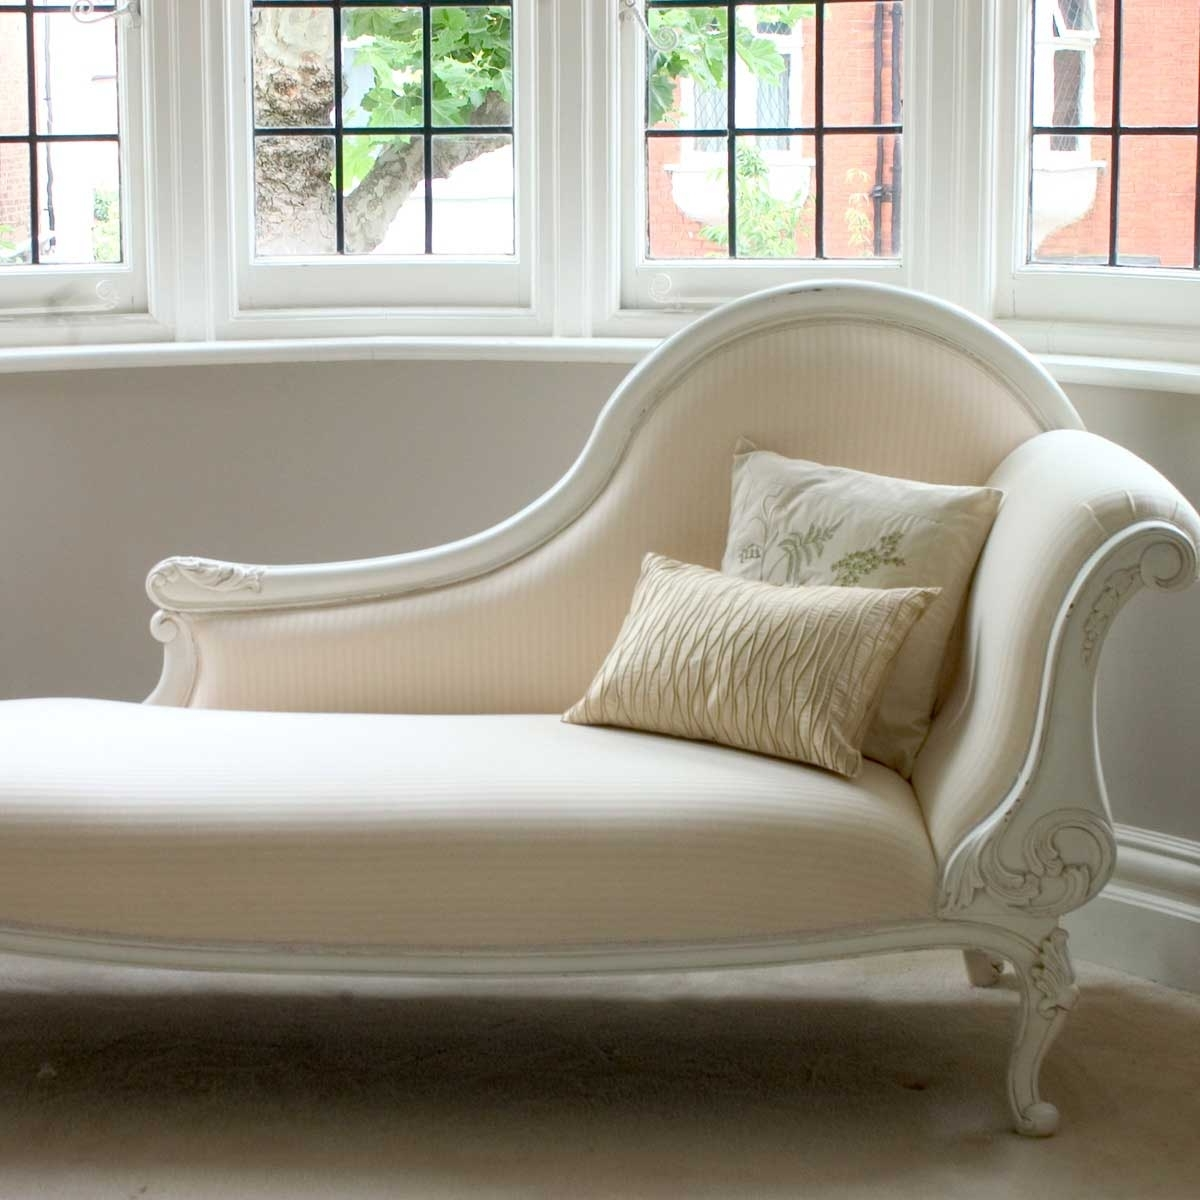 Chaise For White Chaise Lounge Chairs (View 14 of 15)